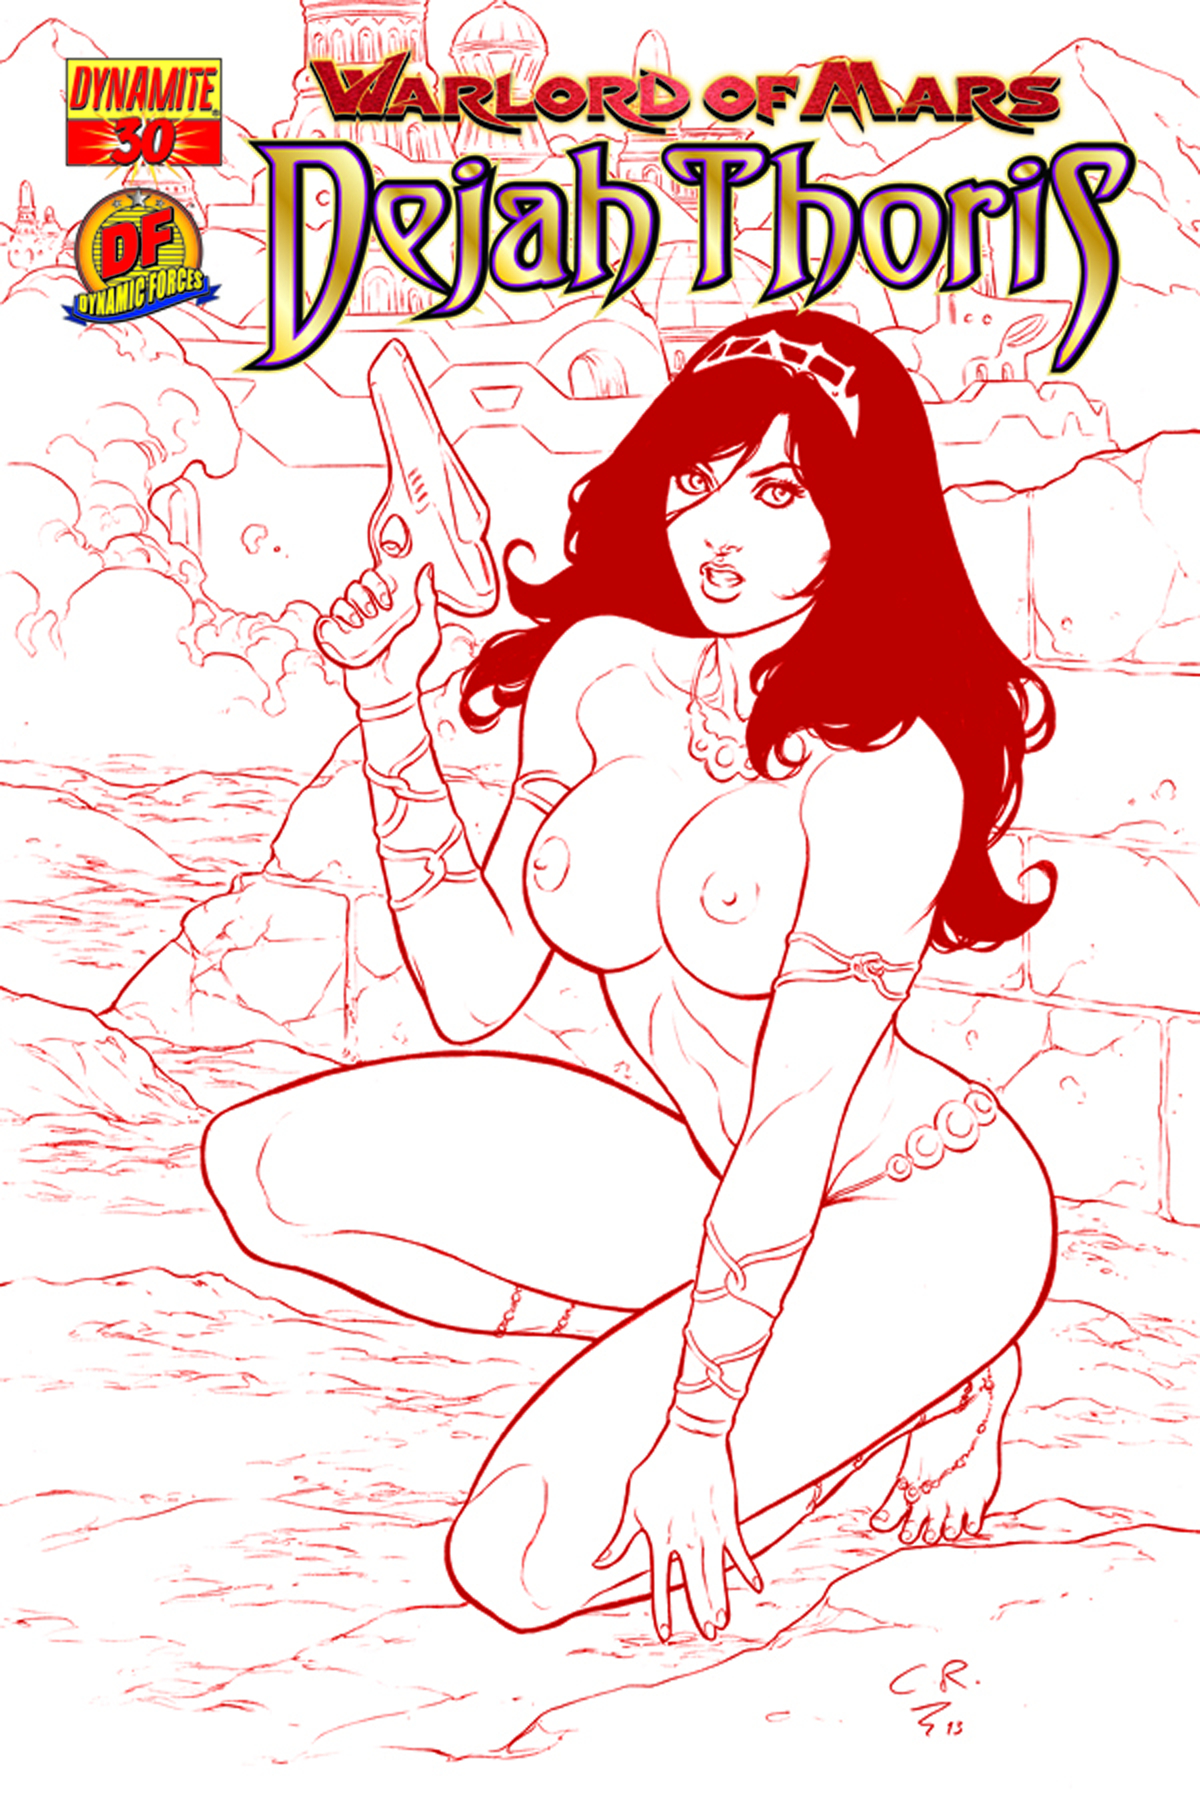 DF WARLORD OF MARS DEJAH THORIS #30 RISQUE RED CVR